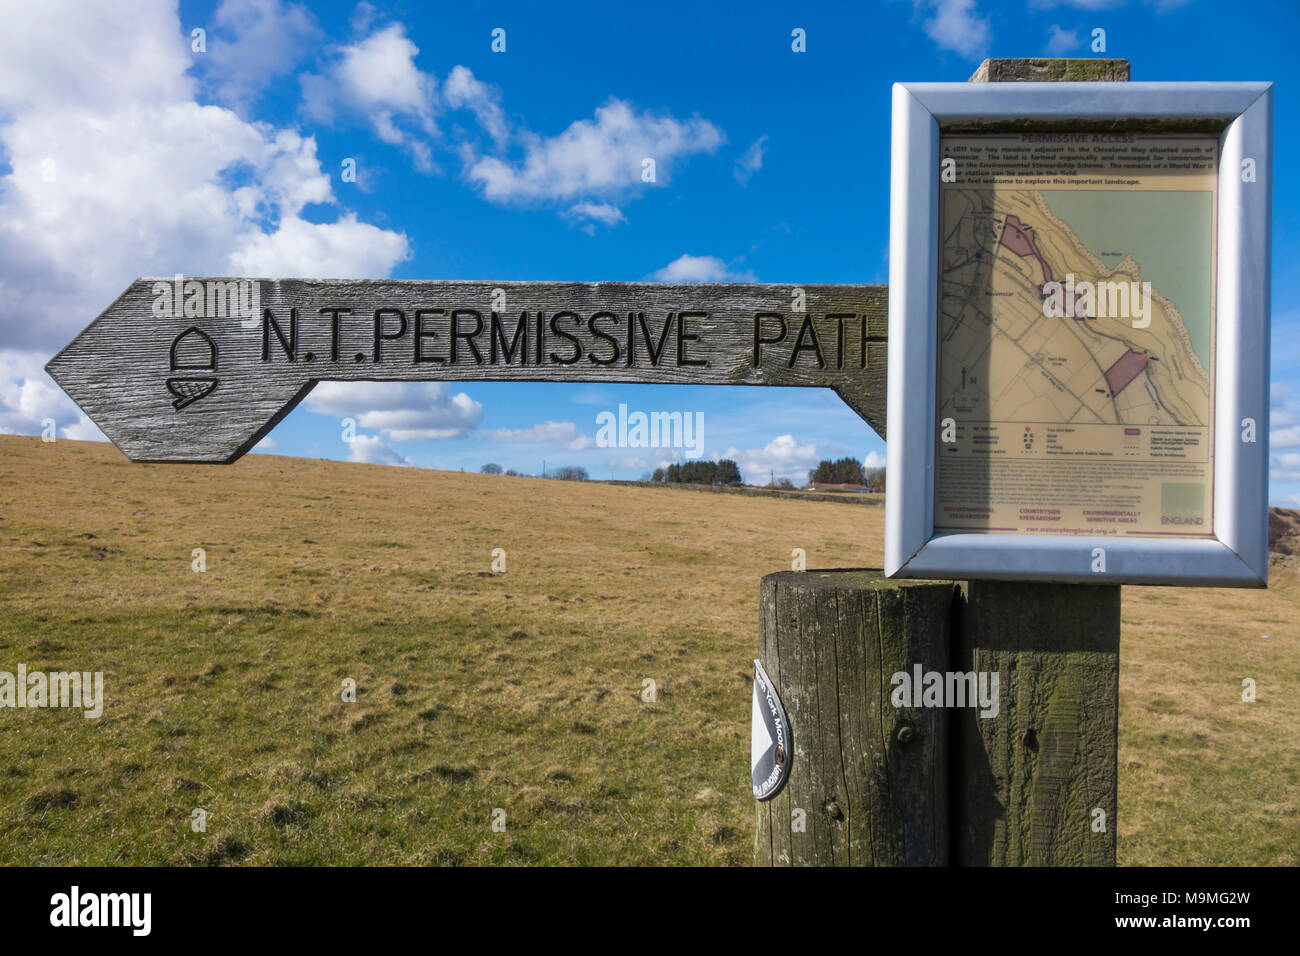 Finger post showing an NT Permissive Path where landowner consents to public access but not a Right of Way field with WW2 Radar Station Ravenscar - Stock Image